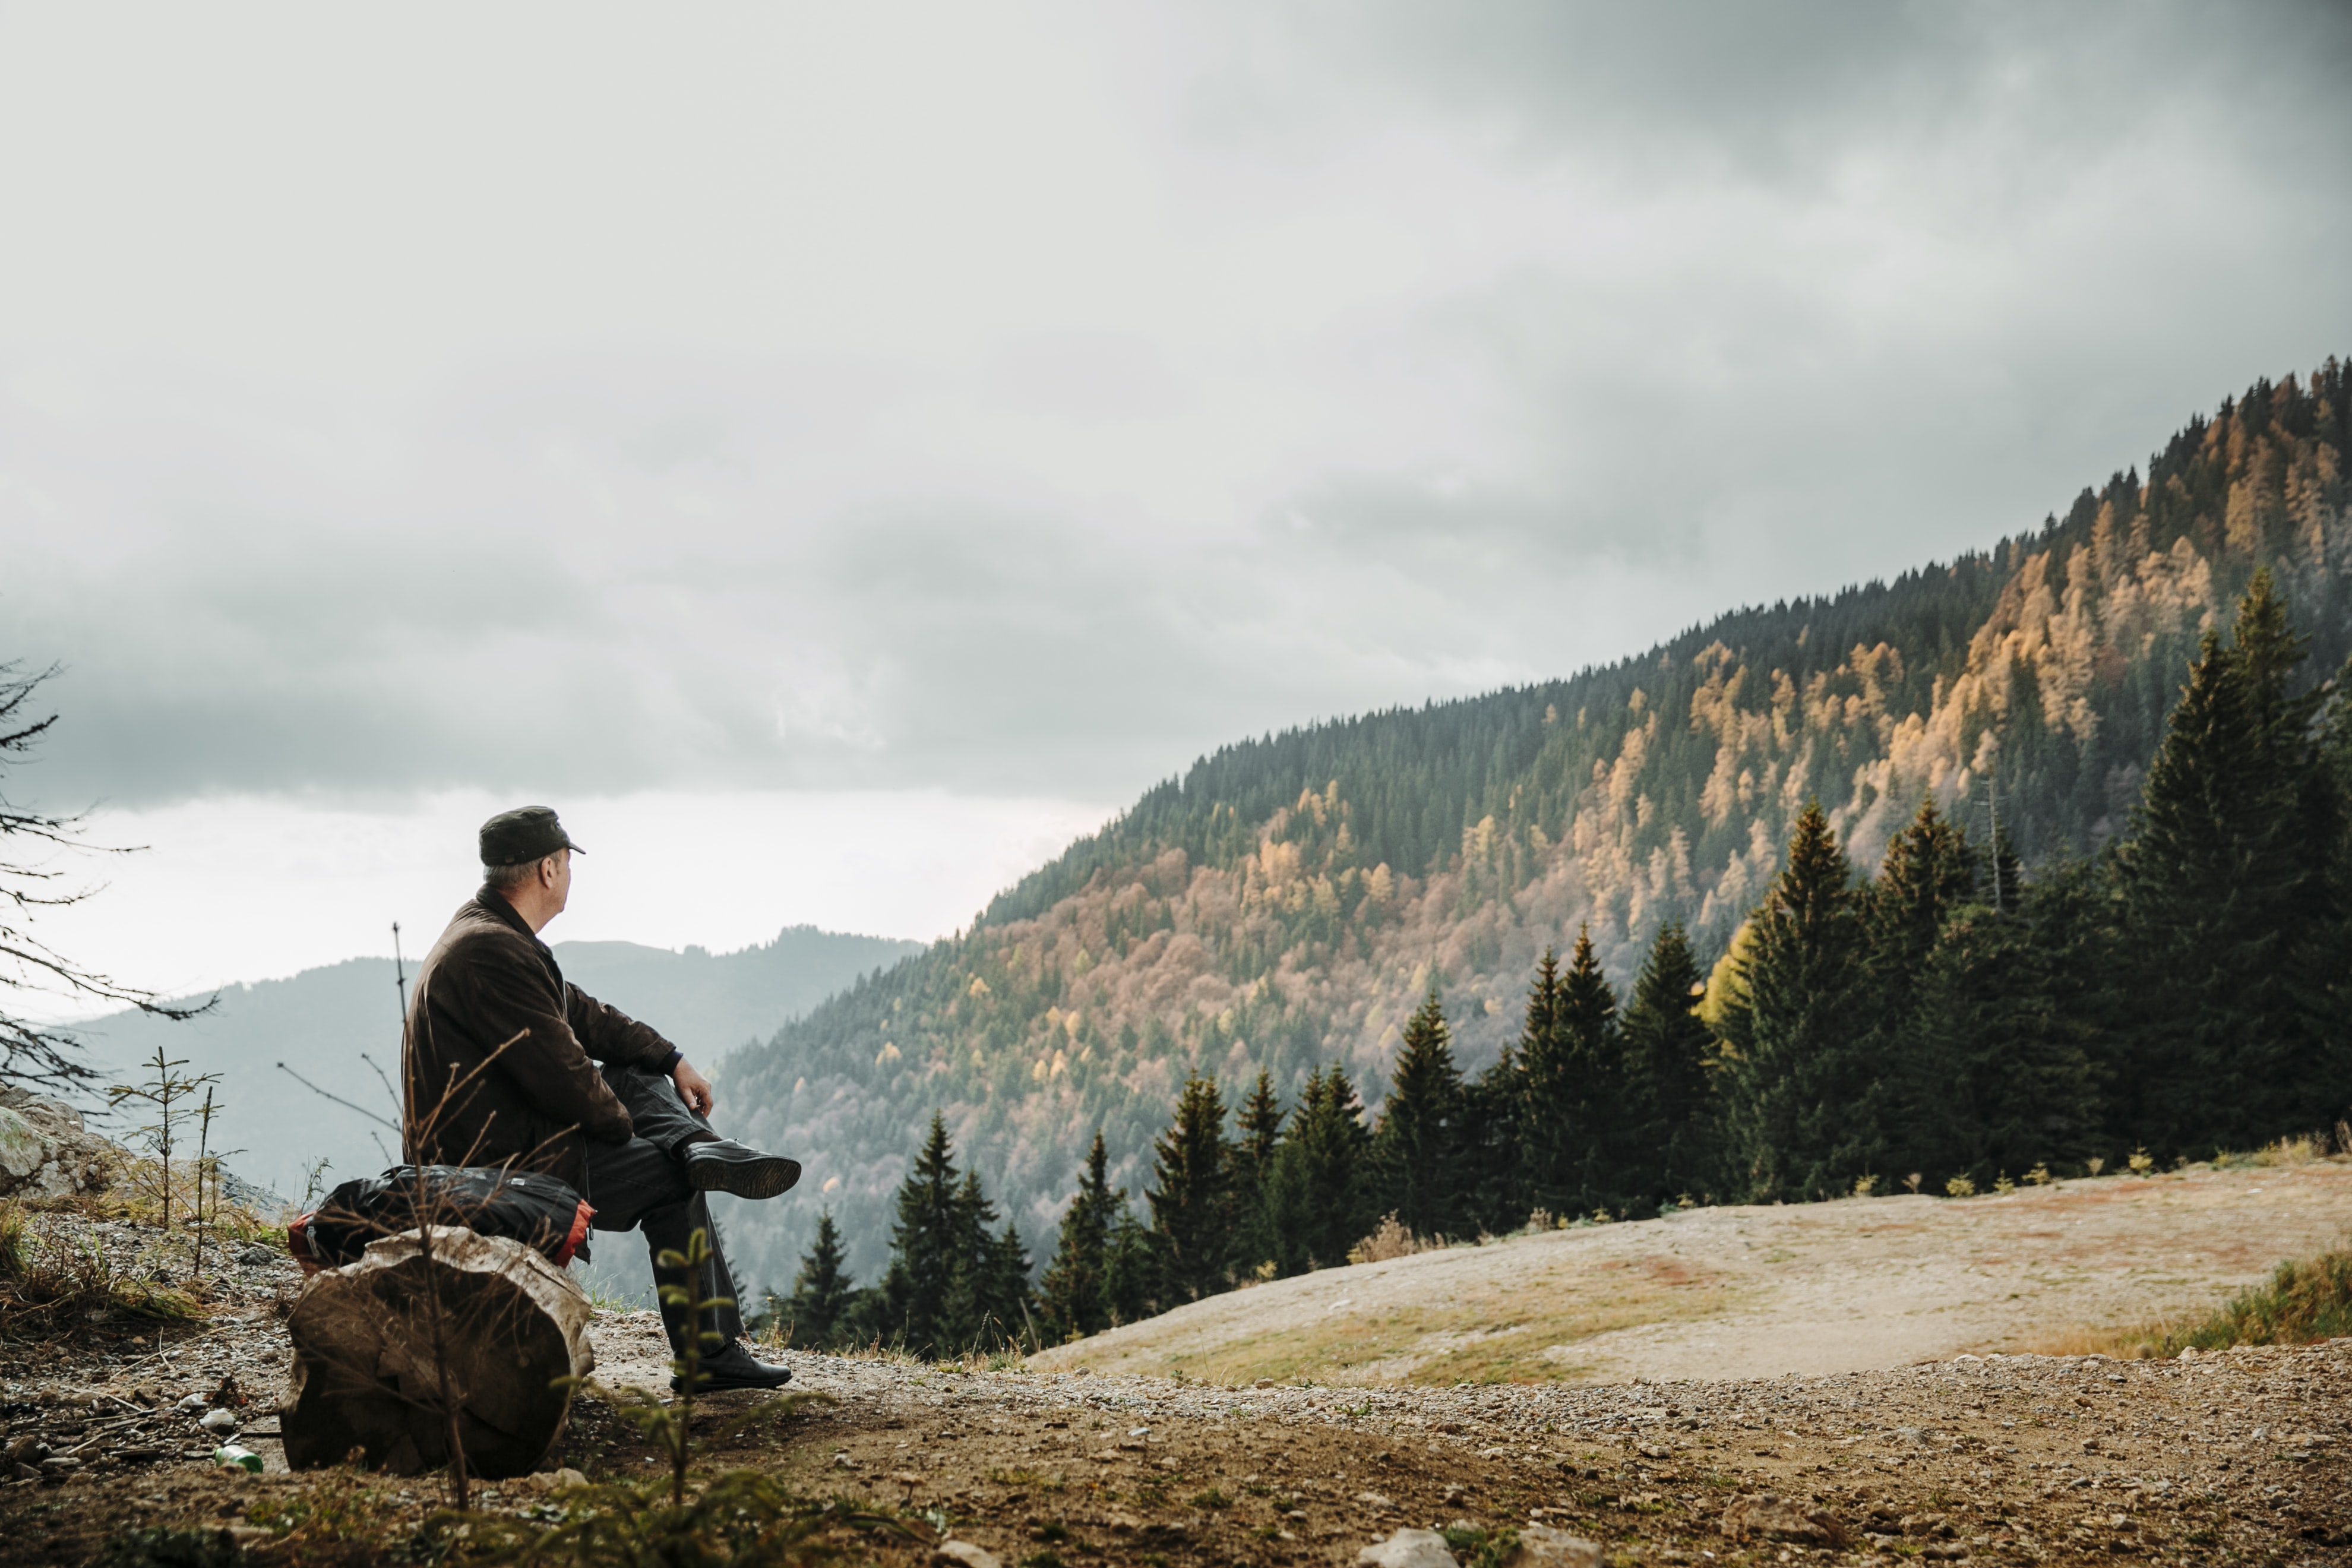 man sitting on rock facing forest